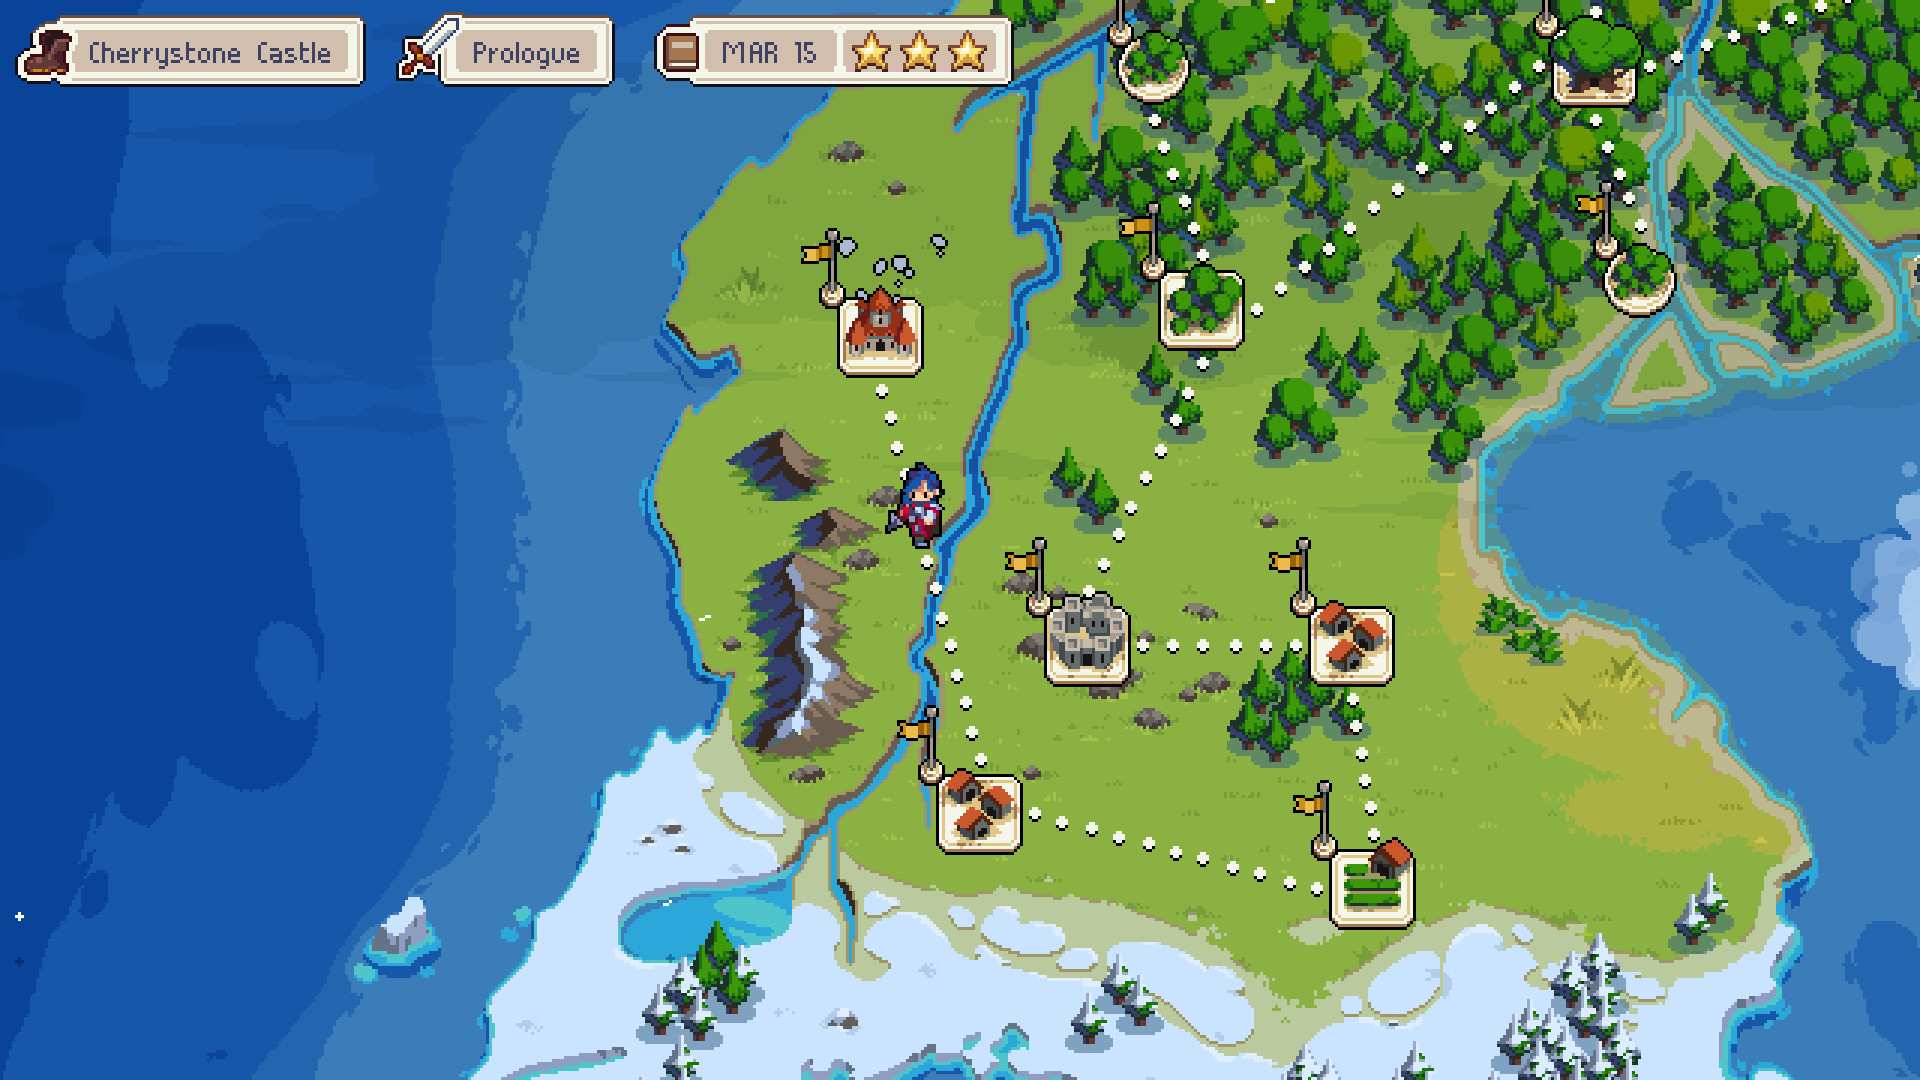 The Advance Wars campaign is being rebuilt in Wargroove